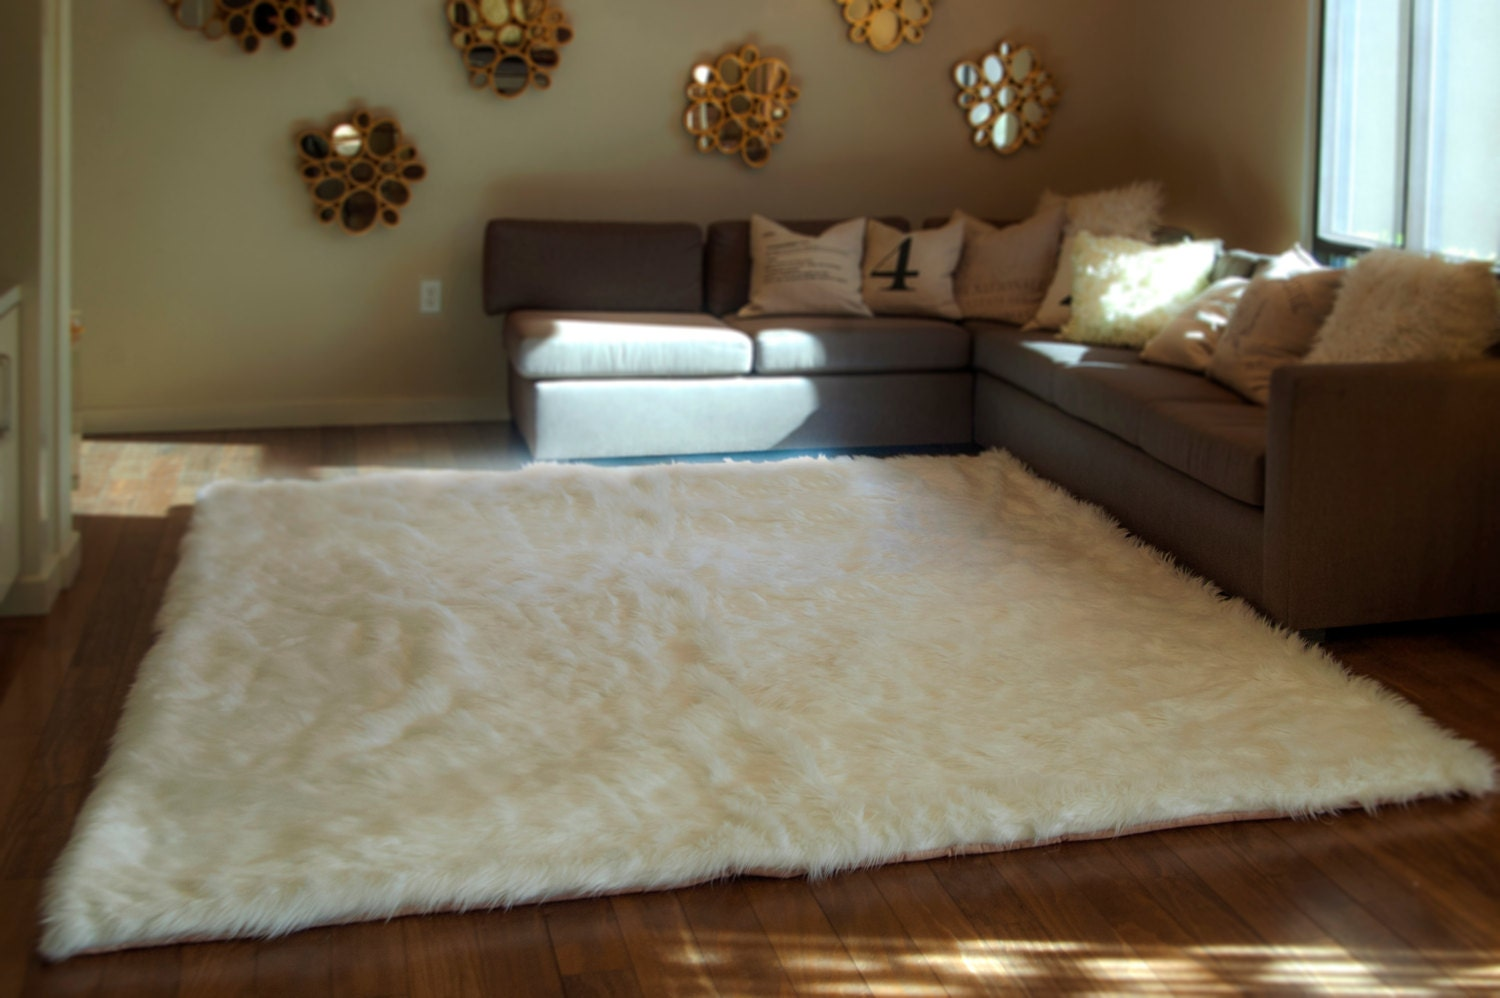 uk white in rug p monde faux fur htm du oumka maisons en x